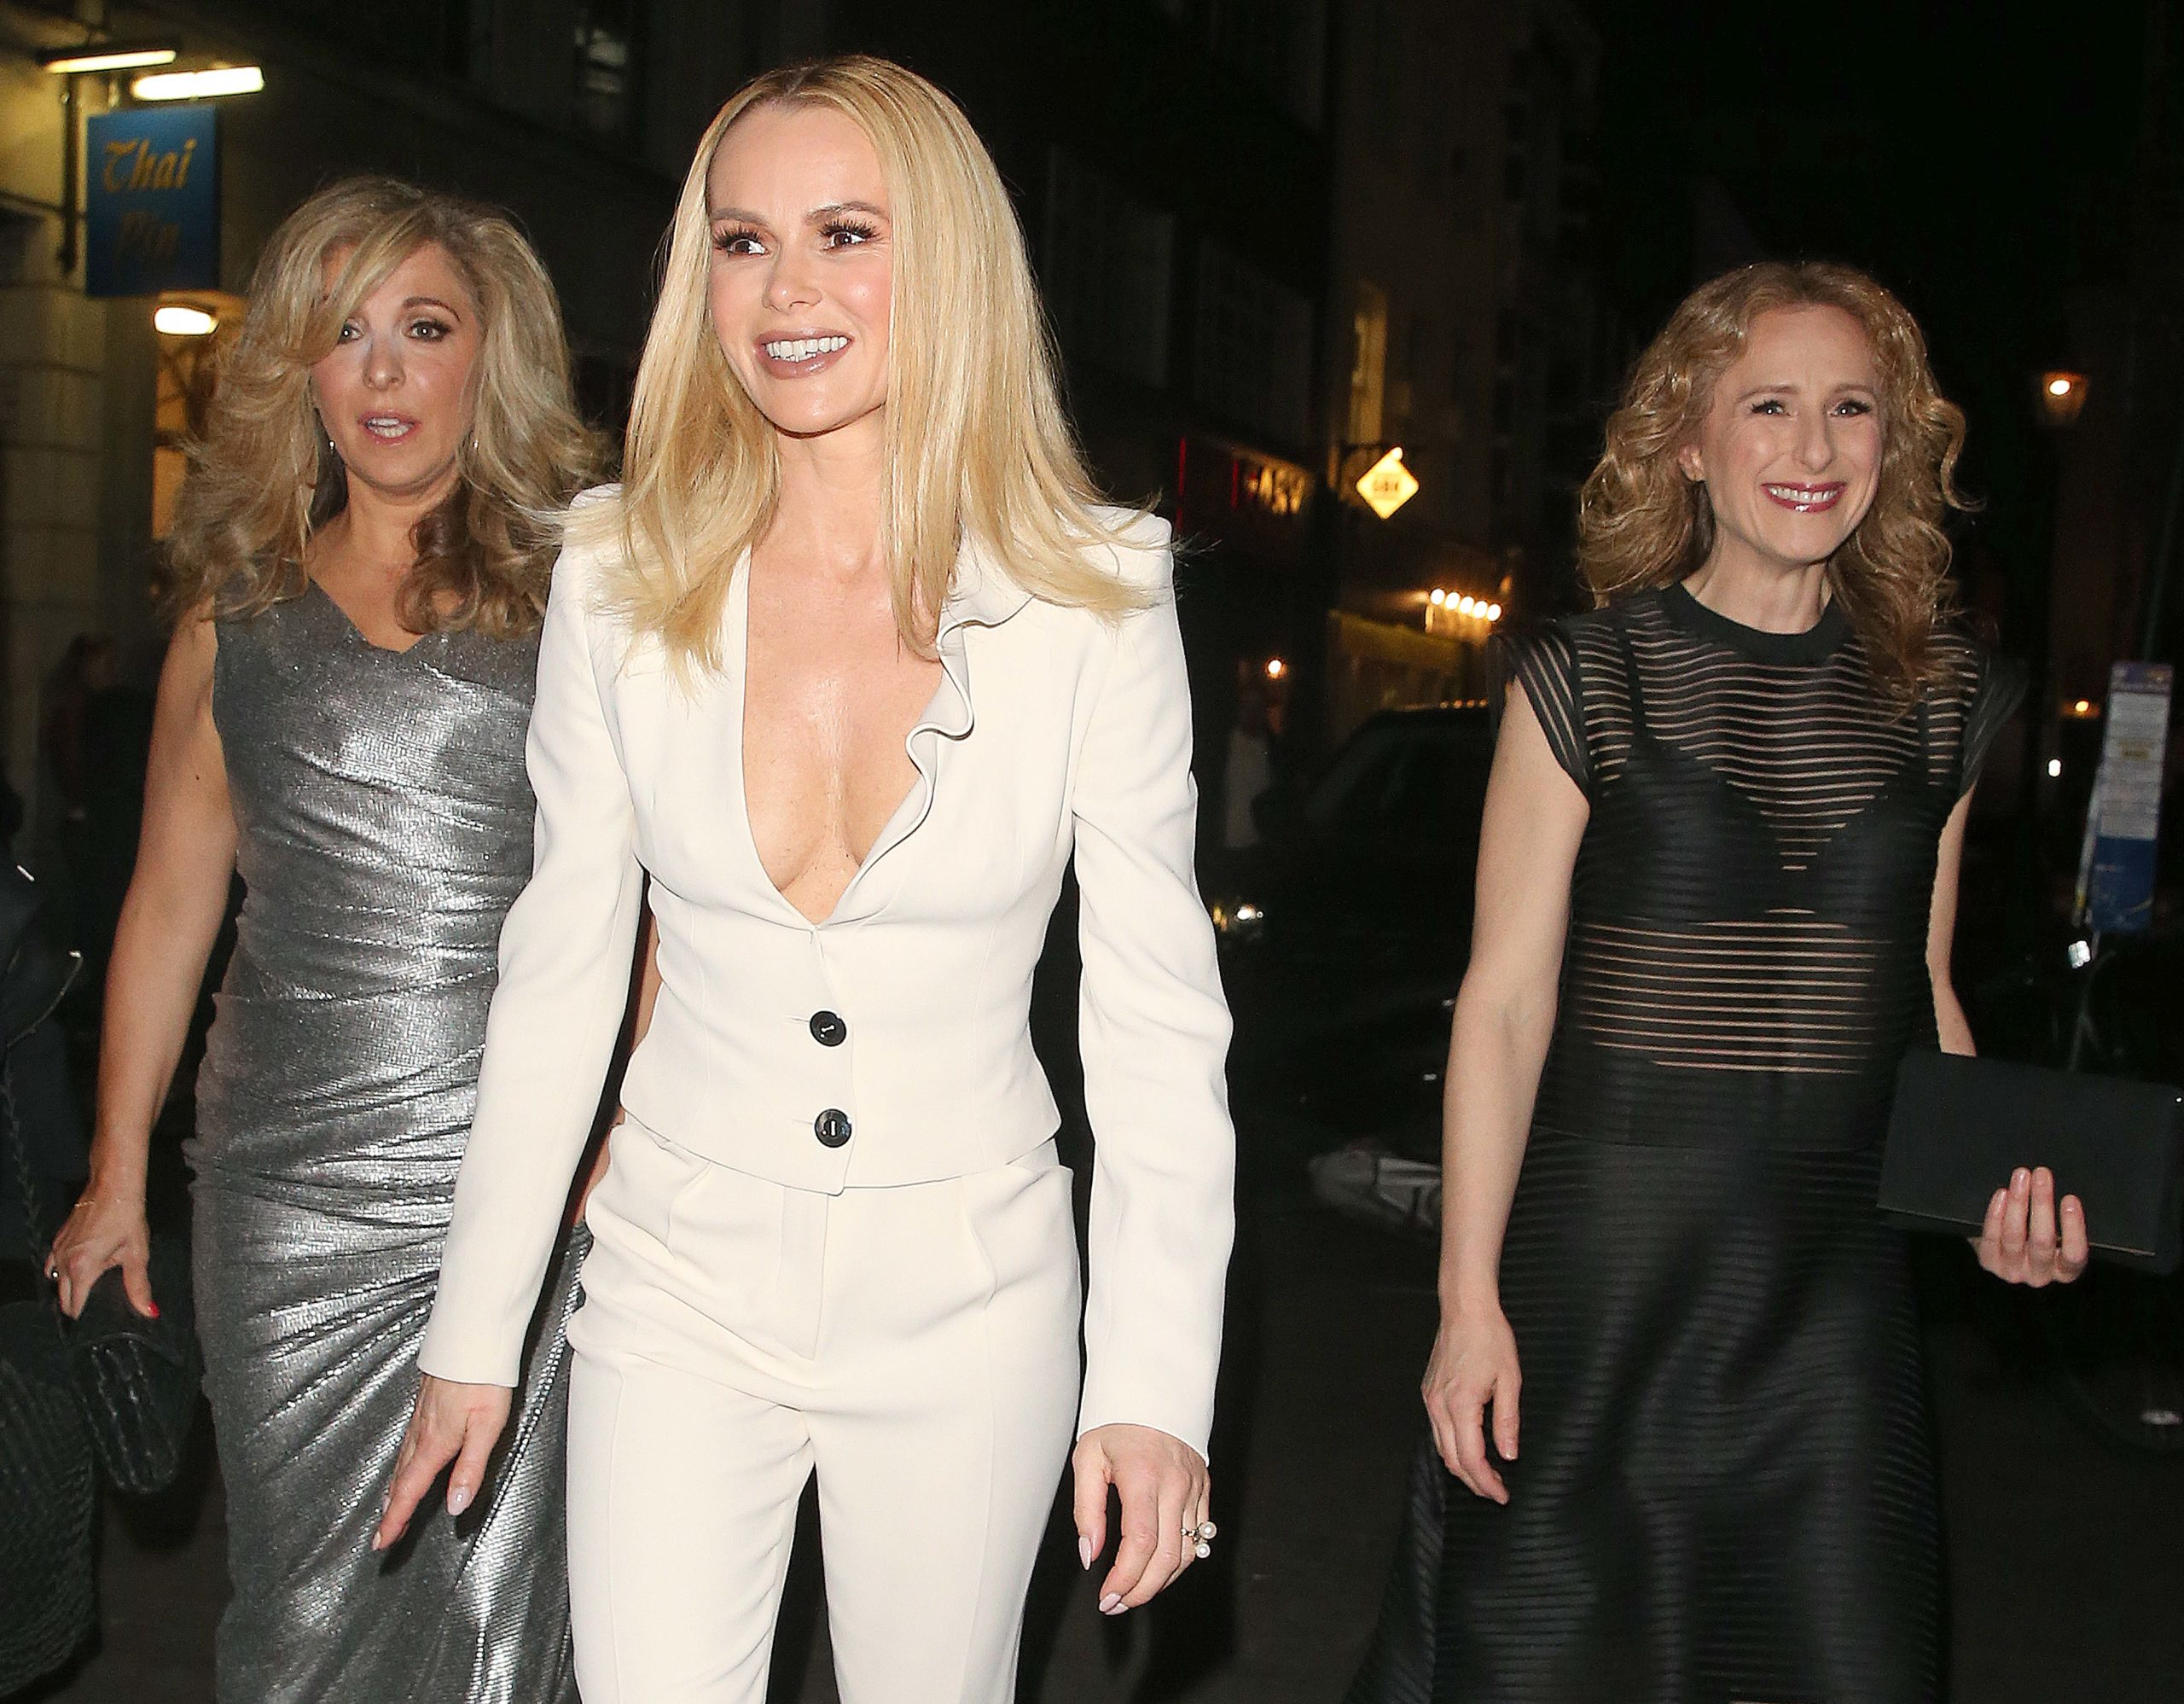 Tracy-Ann Oberman, Amanda Holden and Nicola Stephenson on a night out